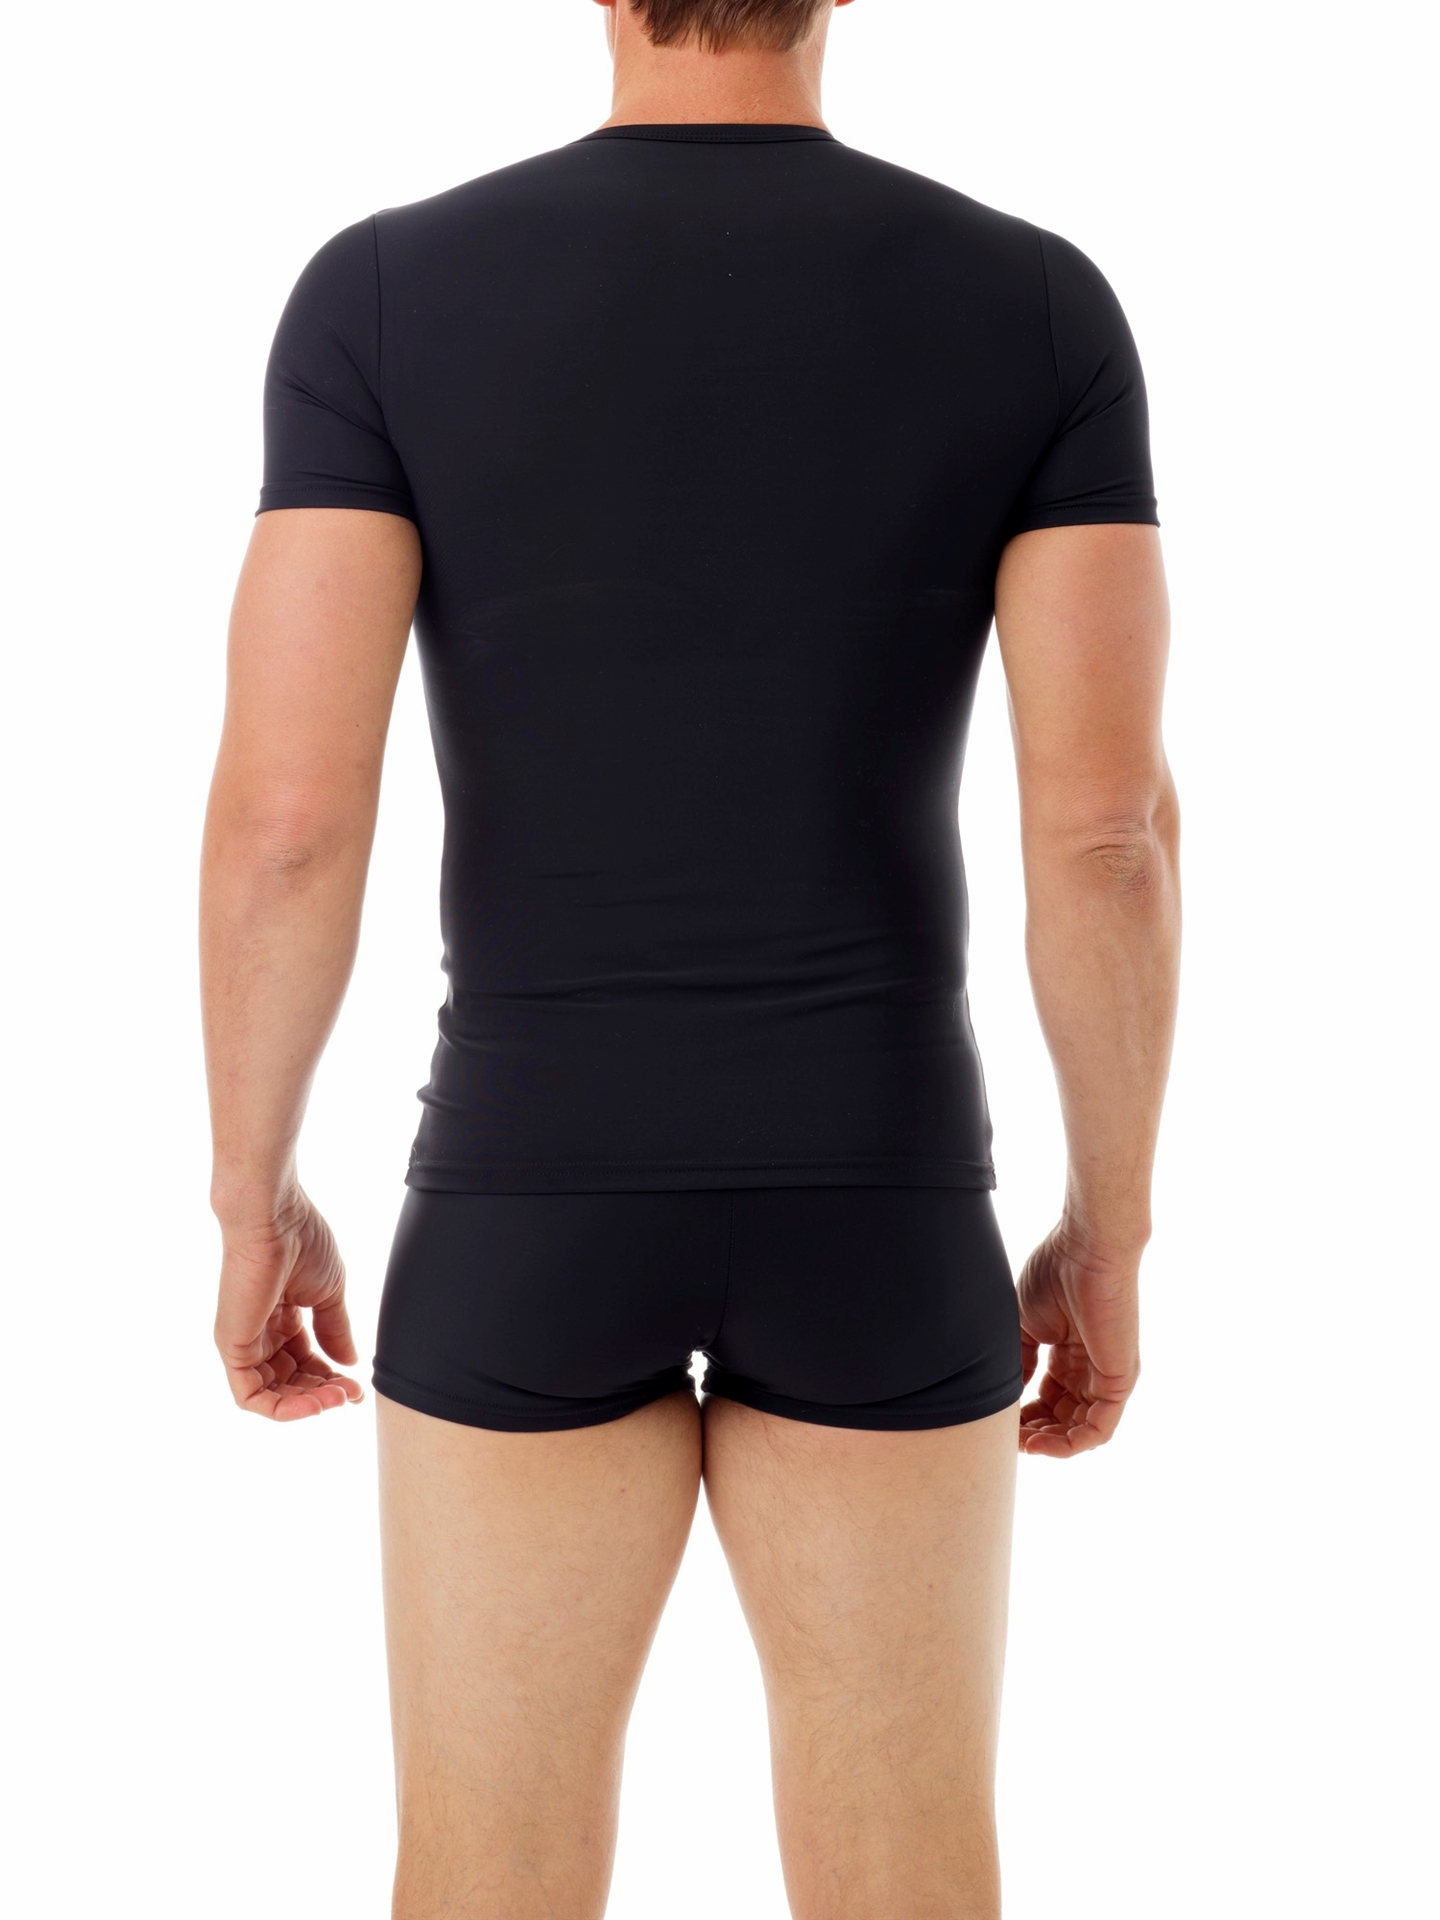 Picture of Microfiber Compression Crew Neck T-shirt with Short Sleeves